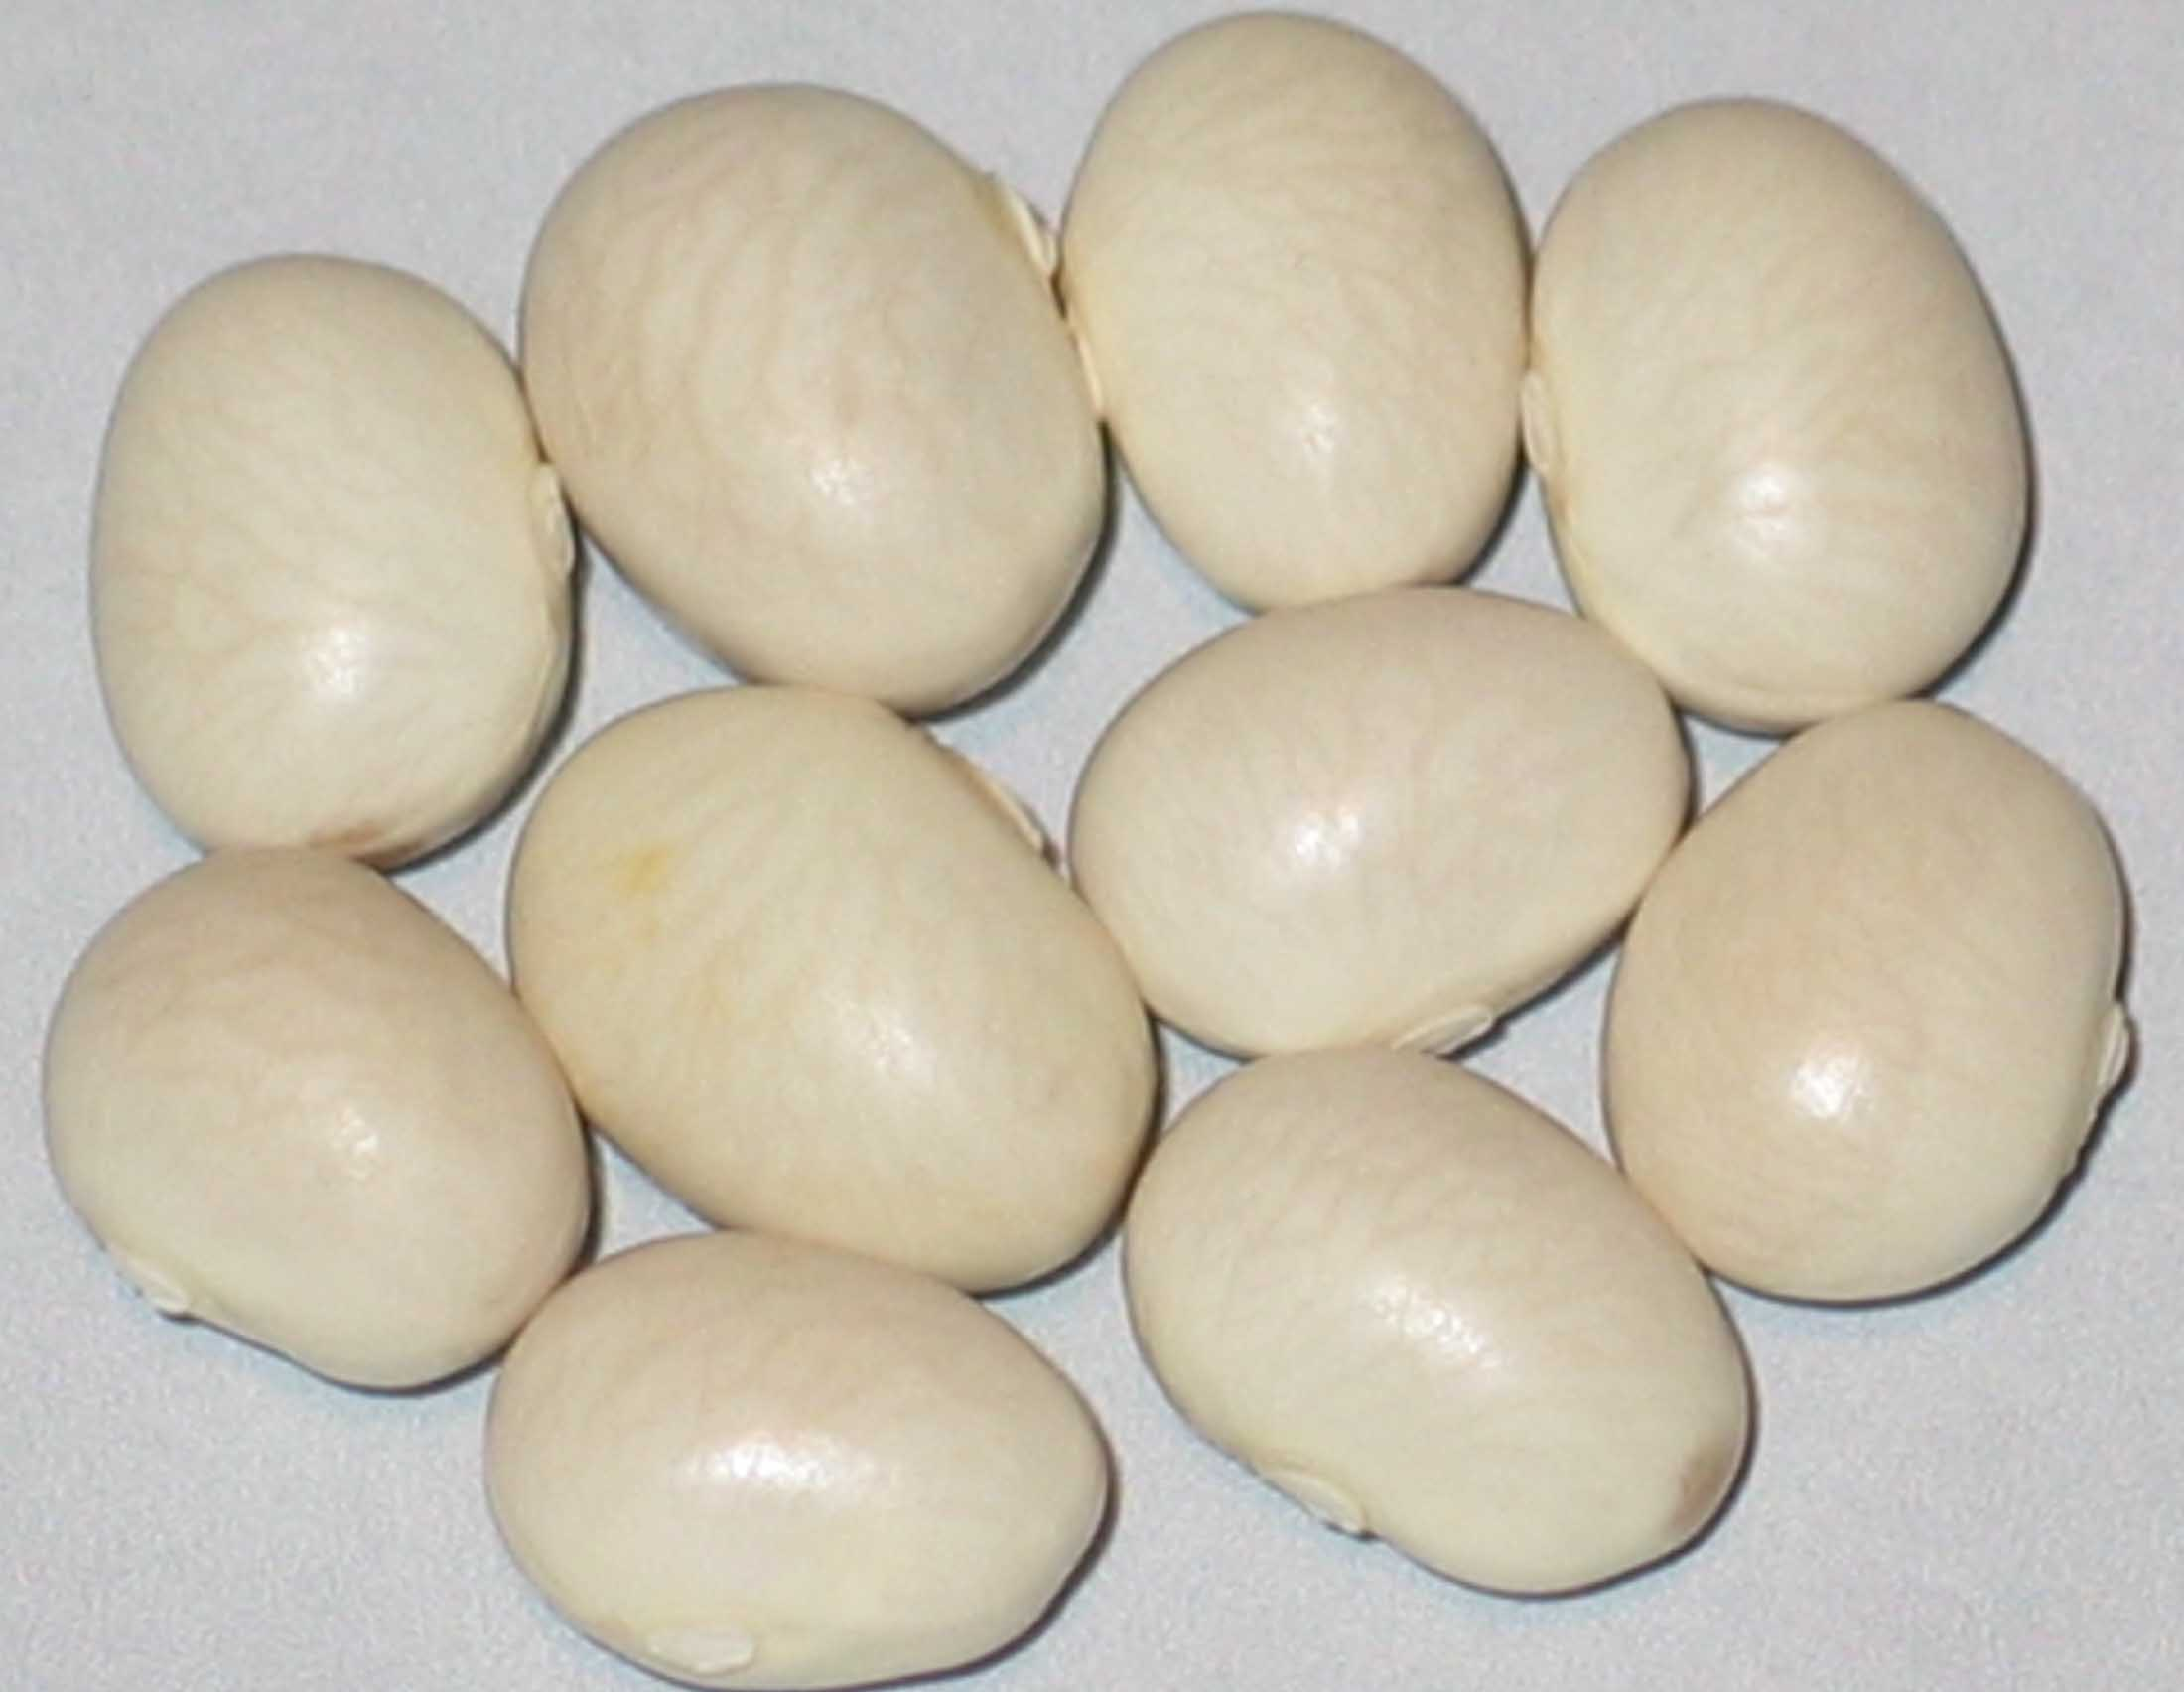 image of Belgishche Suppenbohne beans